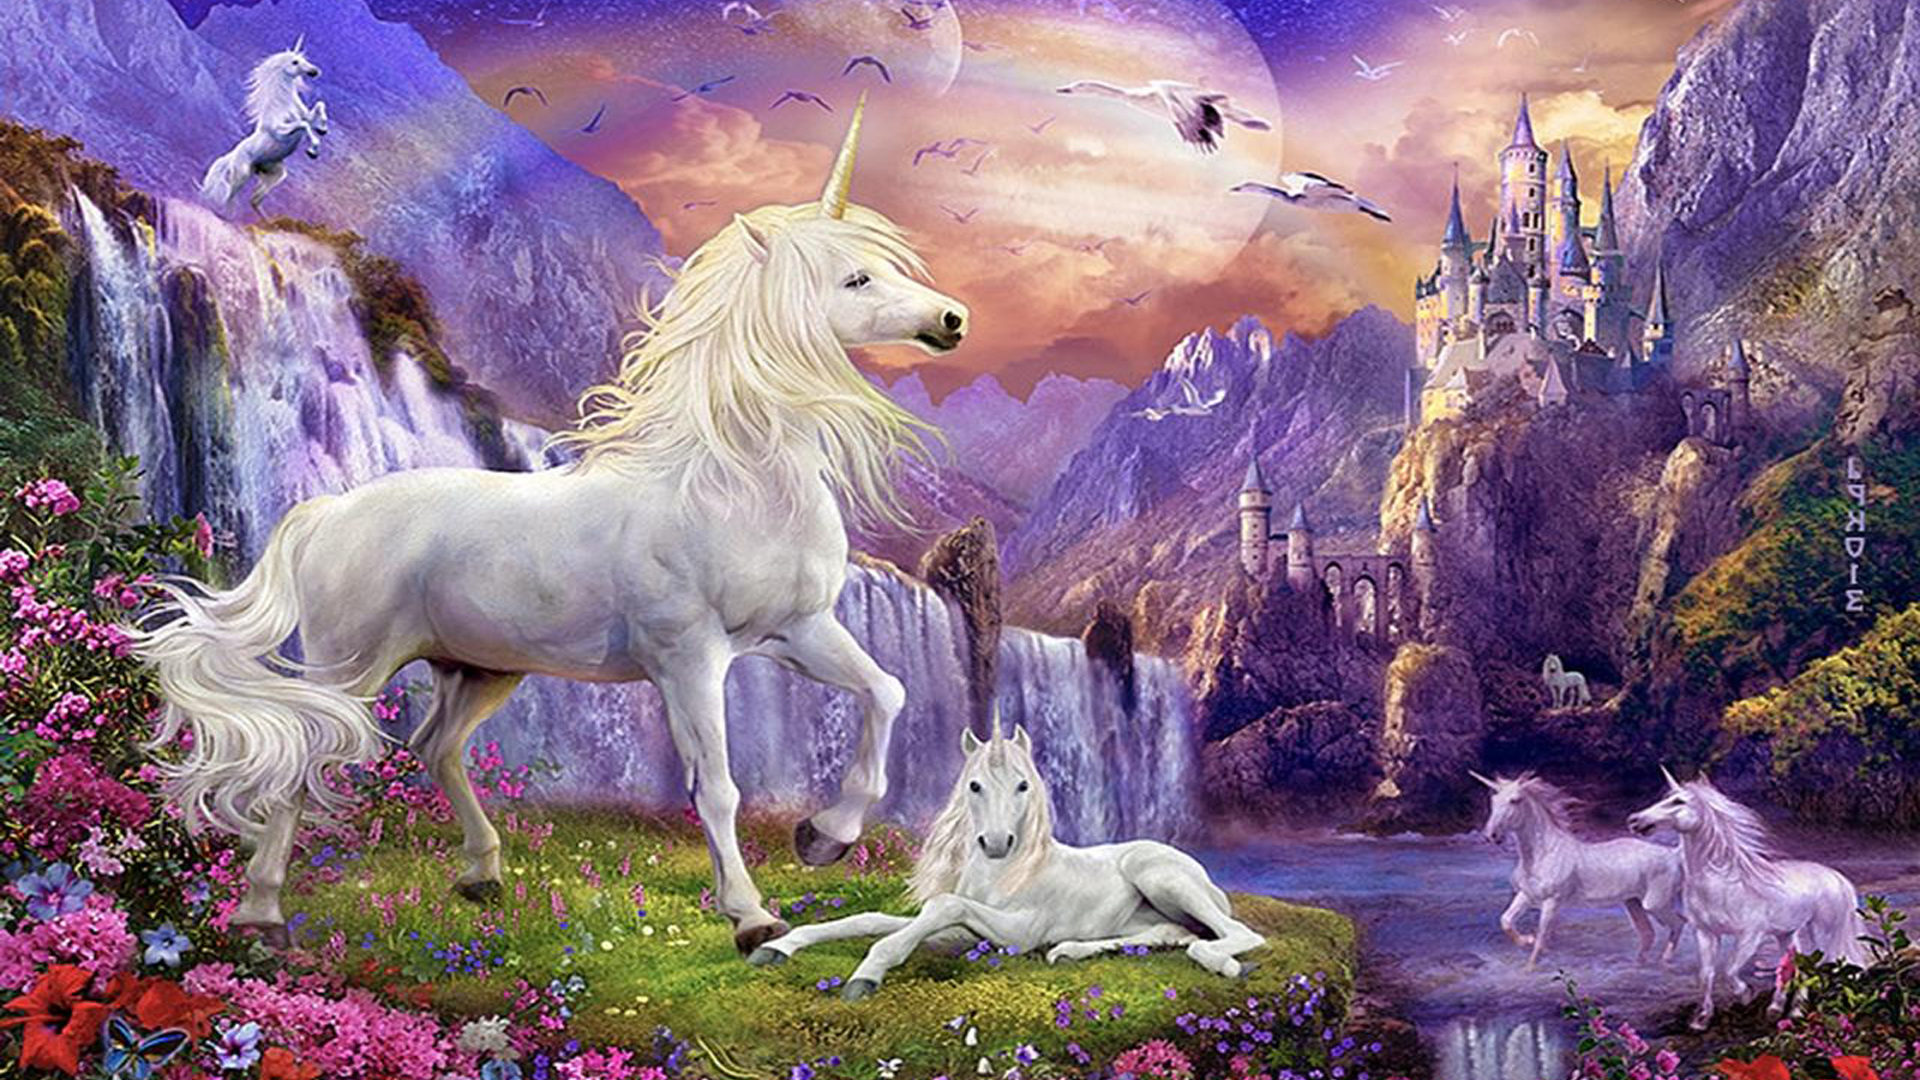 Cute Couple Cartoon Wallpaper Download Fantasy Wallpaper Hd Unicorns Horse Castles Waterfalls